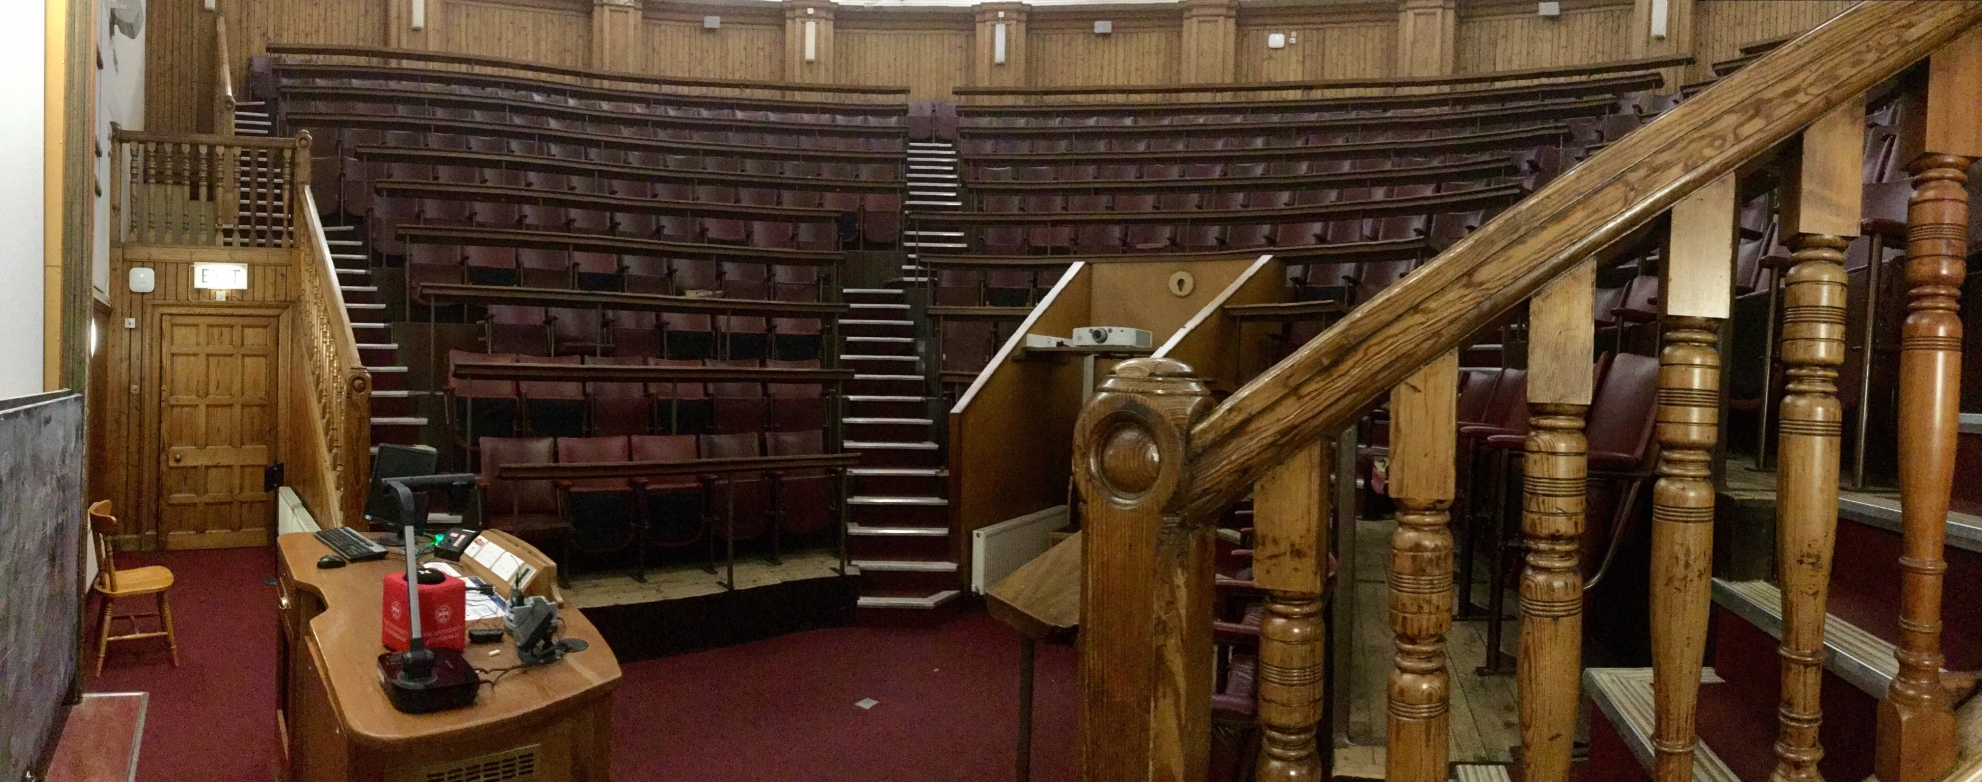 Anatomy Lecture Hall, view from near the door, Old Medical School, University of Edinburgh, 2018 Amy Cools